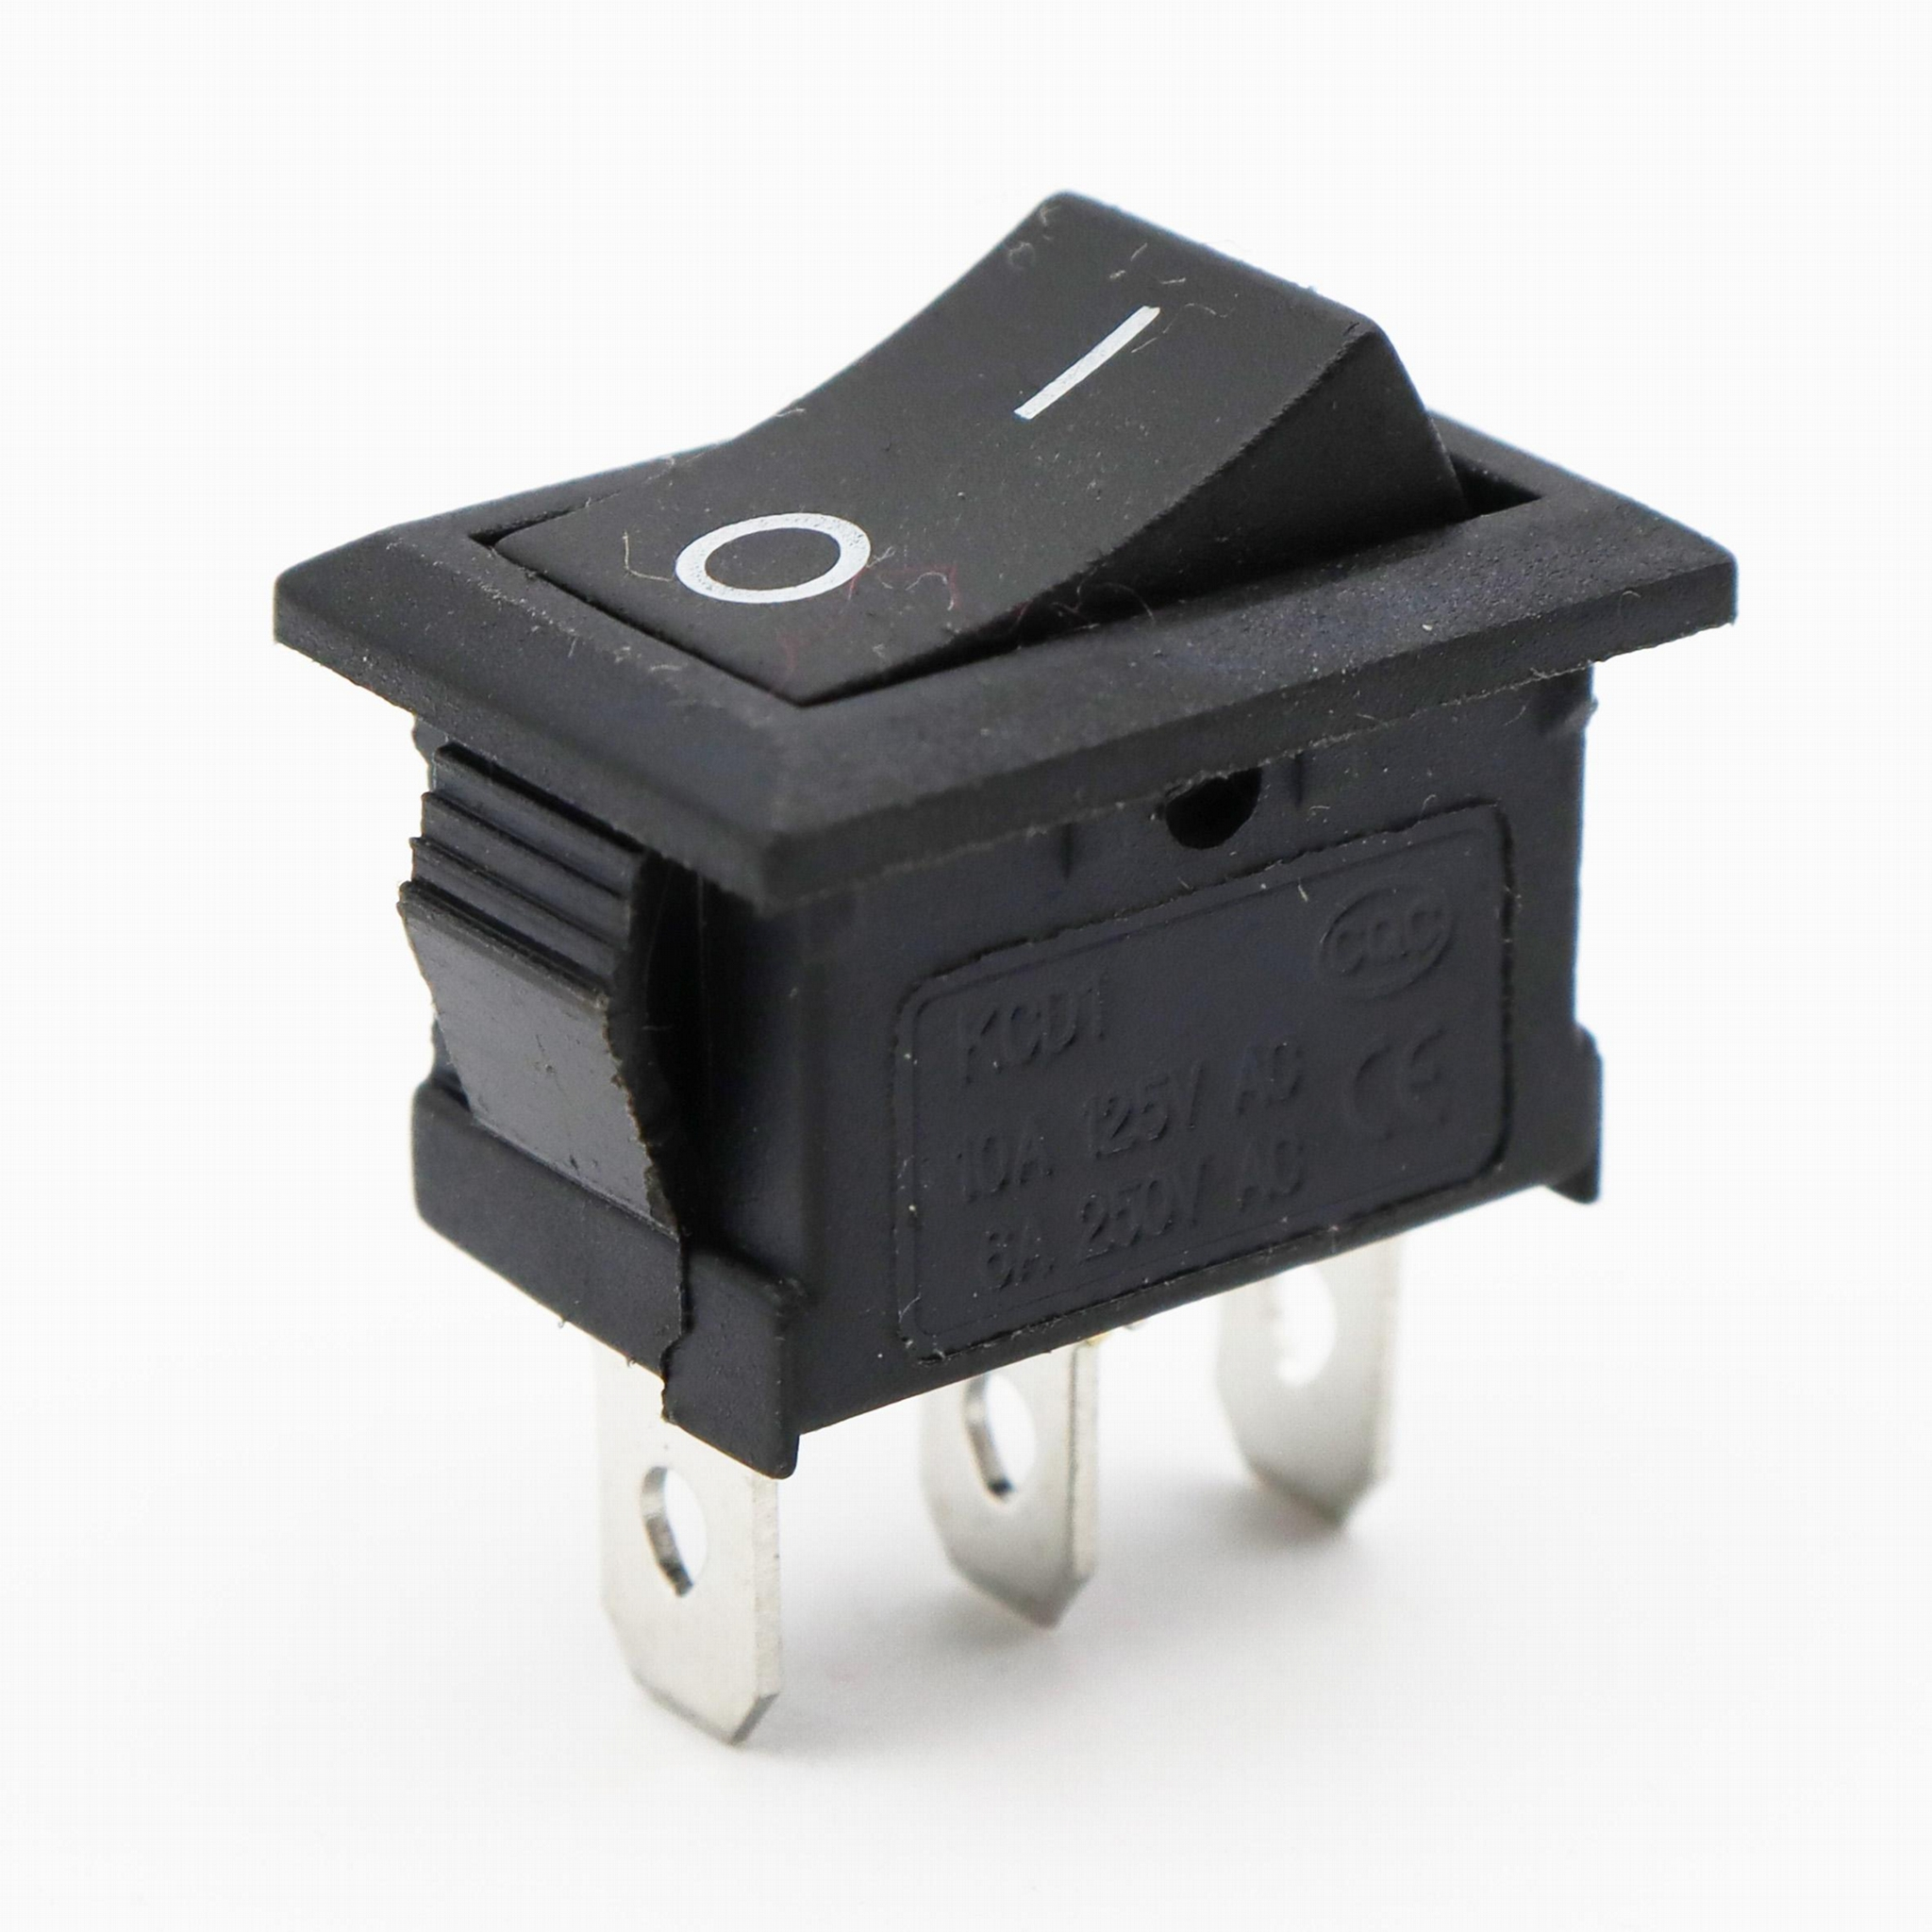 KCD1-101-1 21*15mm 2pins rocker switches 1